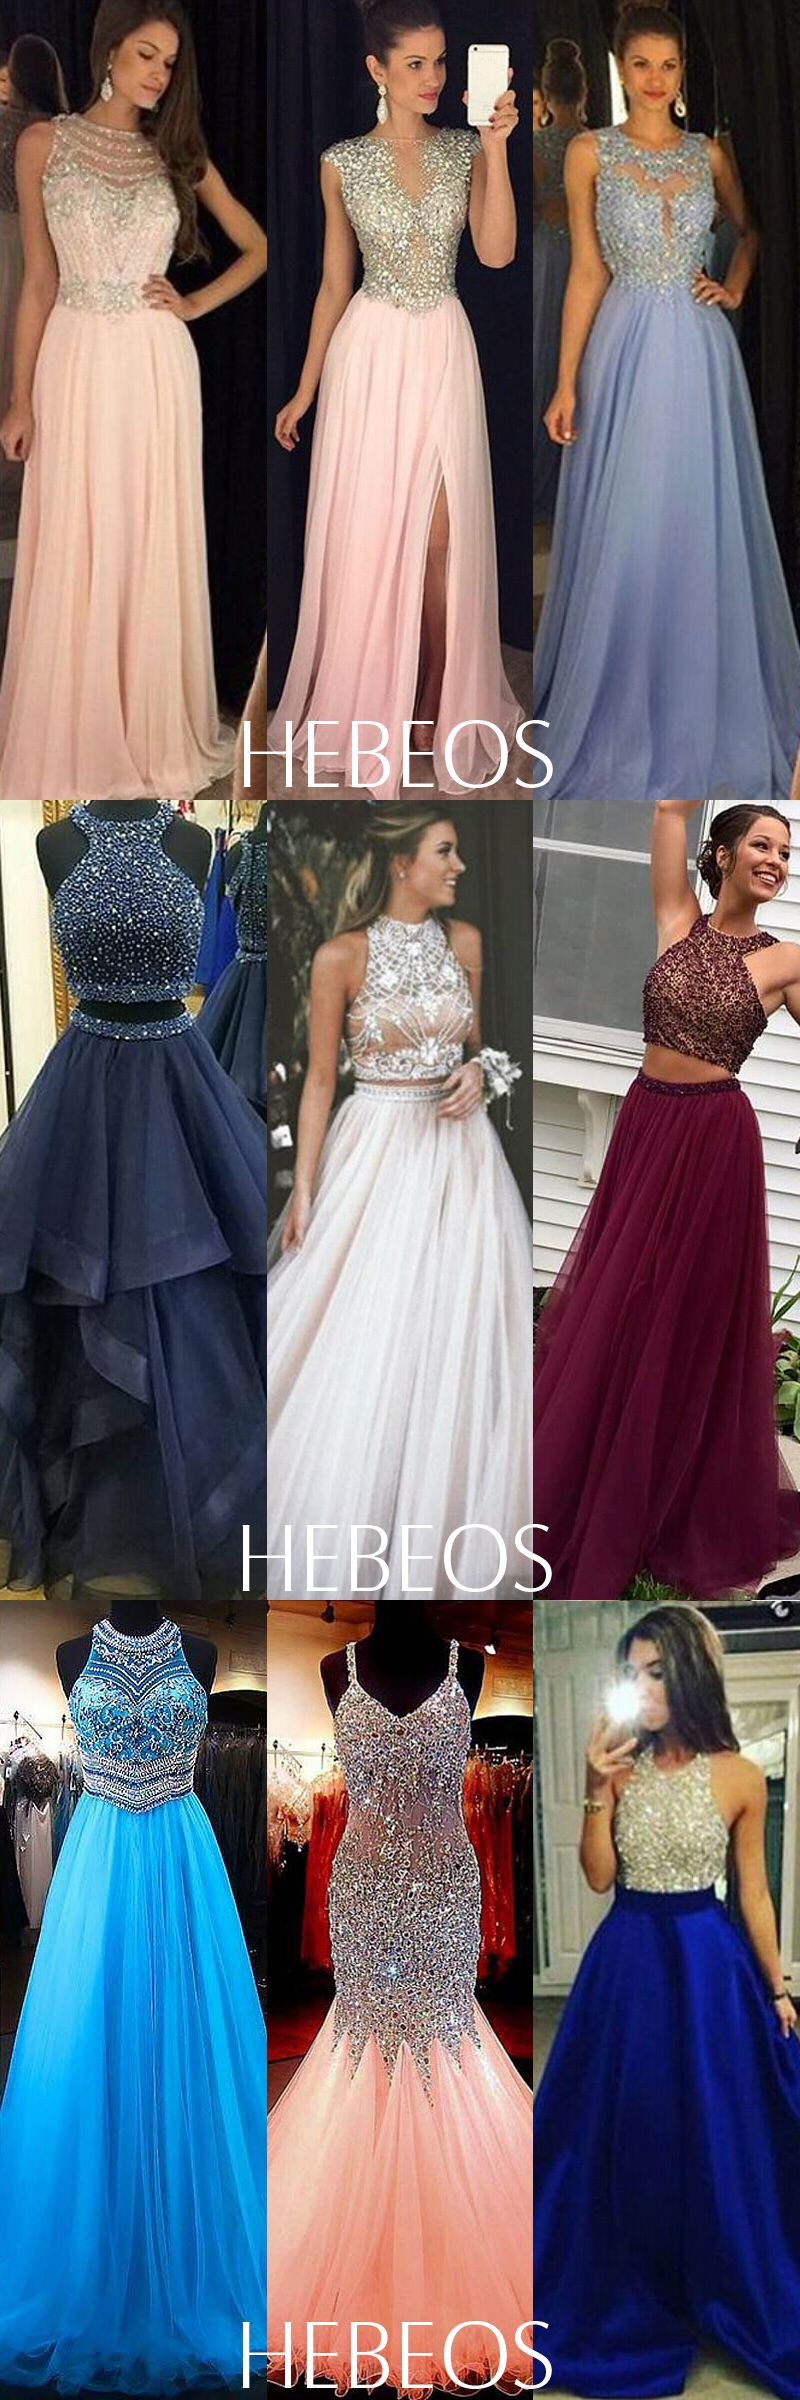 Cheap Prom Dresses On Sale - Hebeos  Prom outfits, Prom dresses